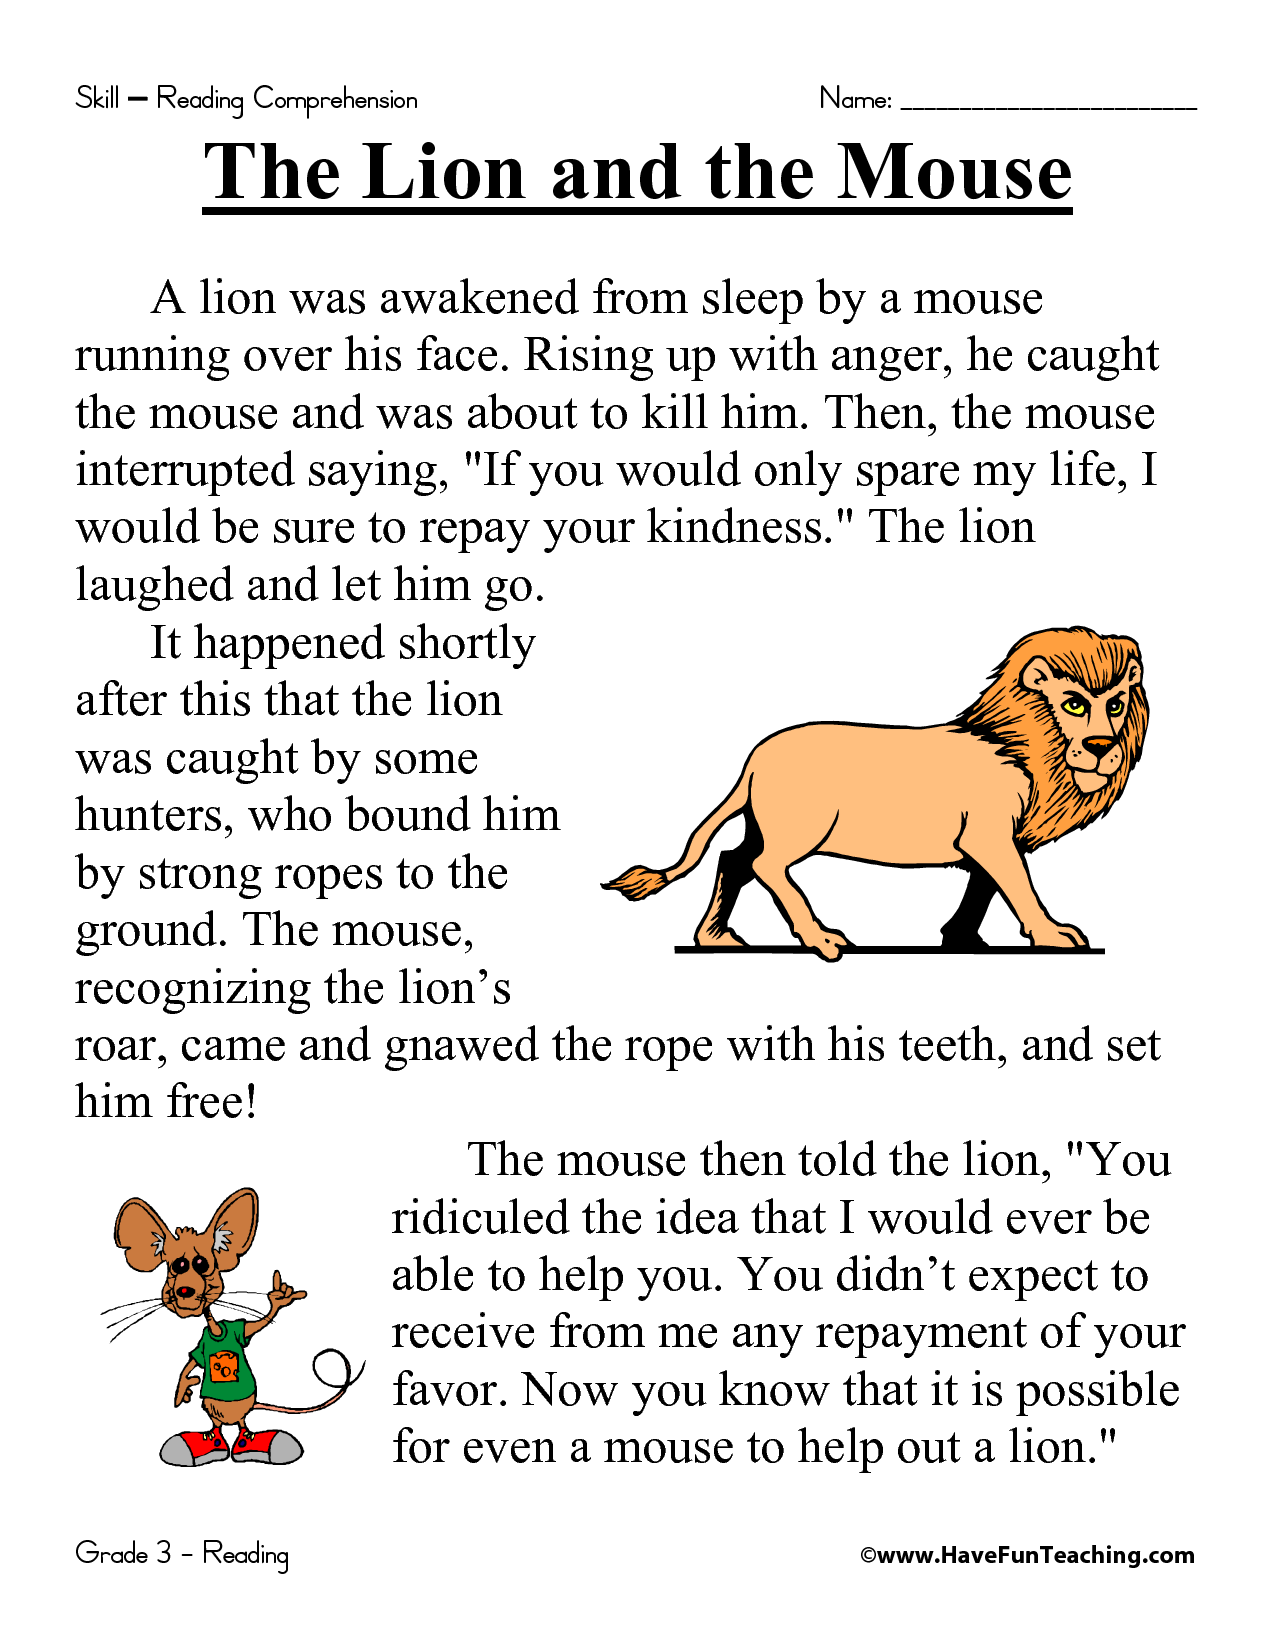 worksheet 5th Grade Reading Comprehension Worksheets Free first grade reading comprehension worksheets the lion and mouse worksheet